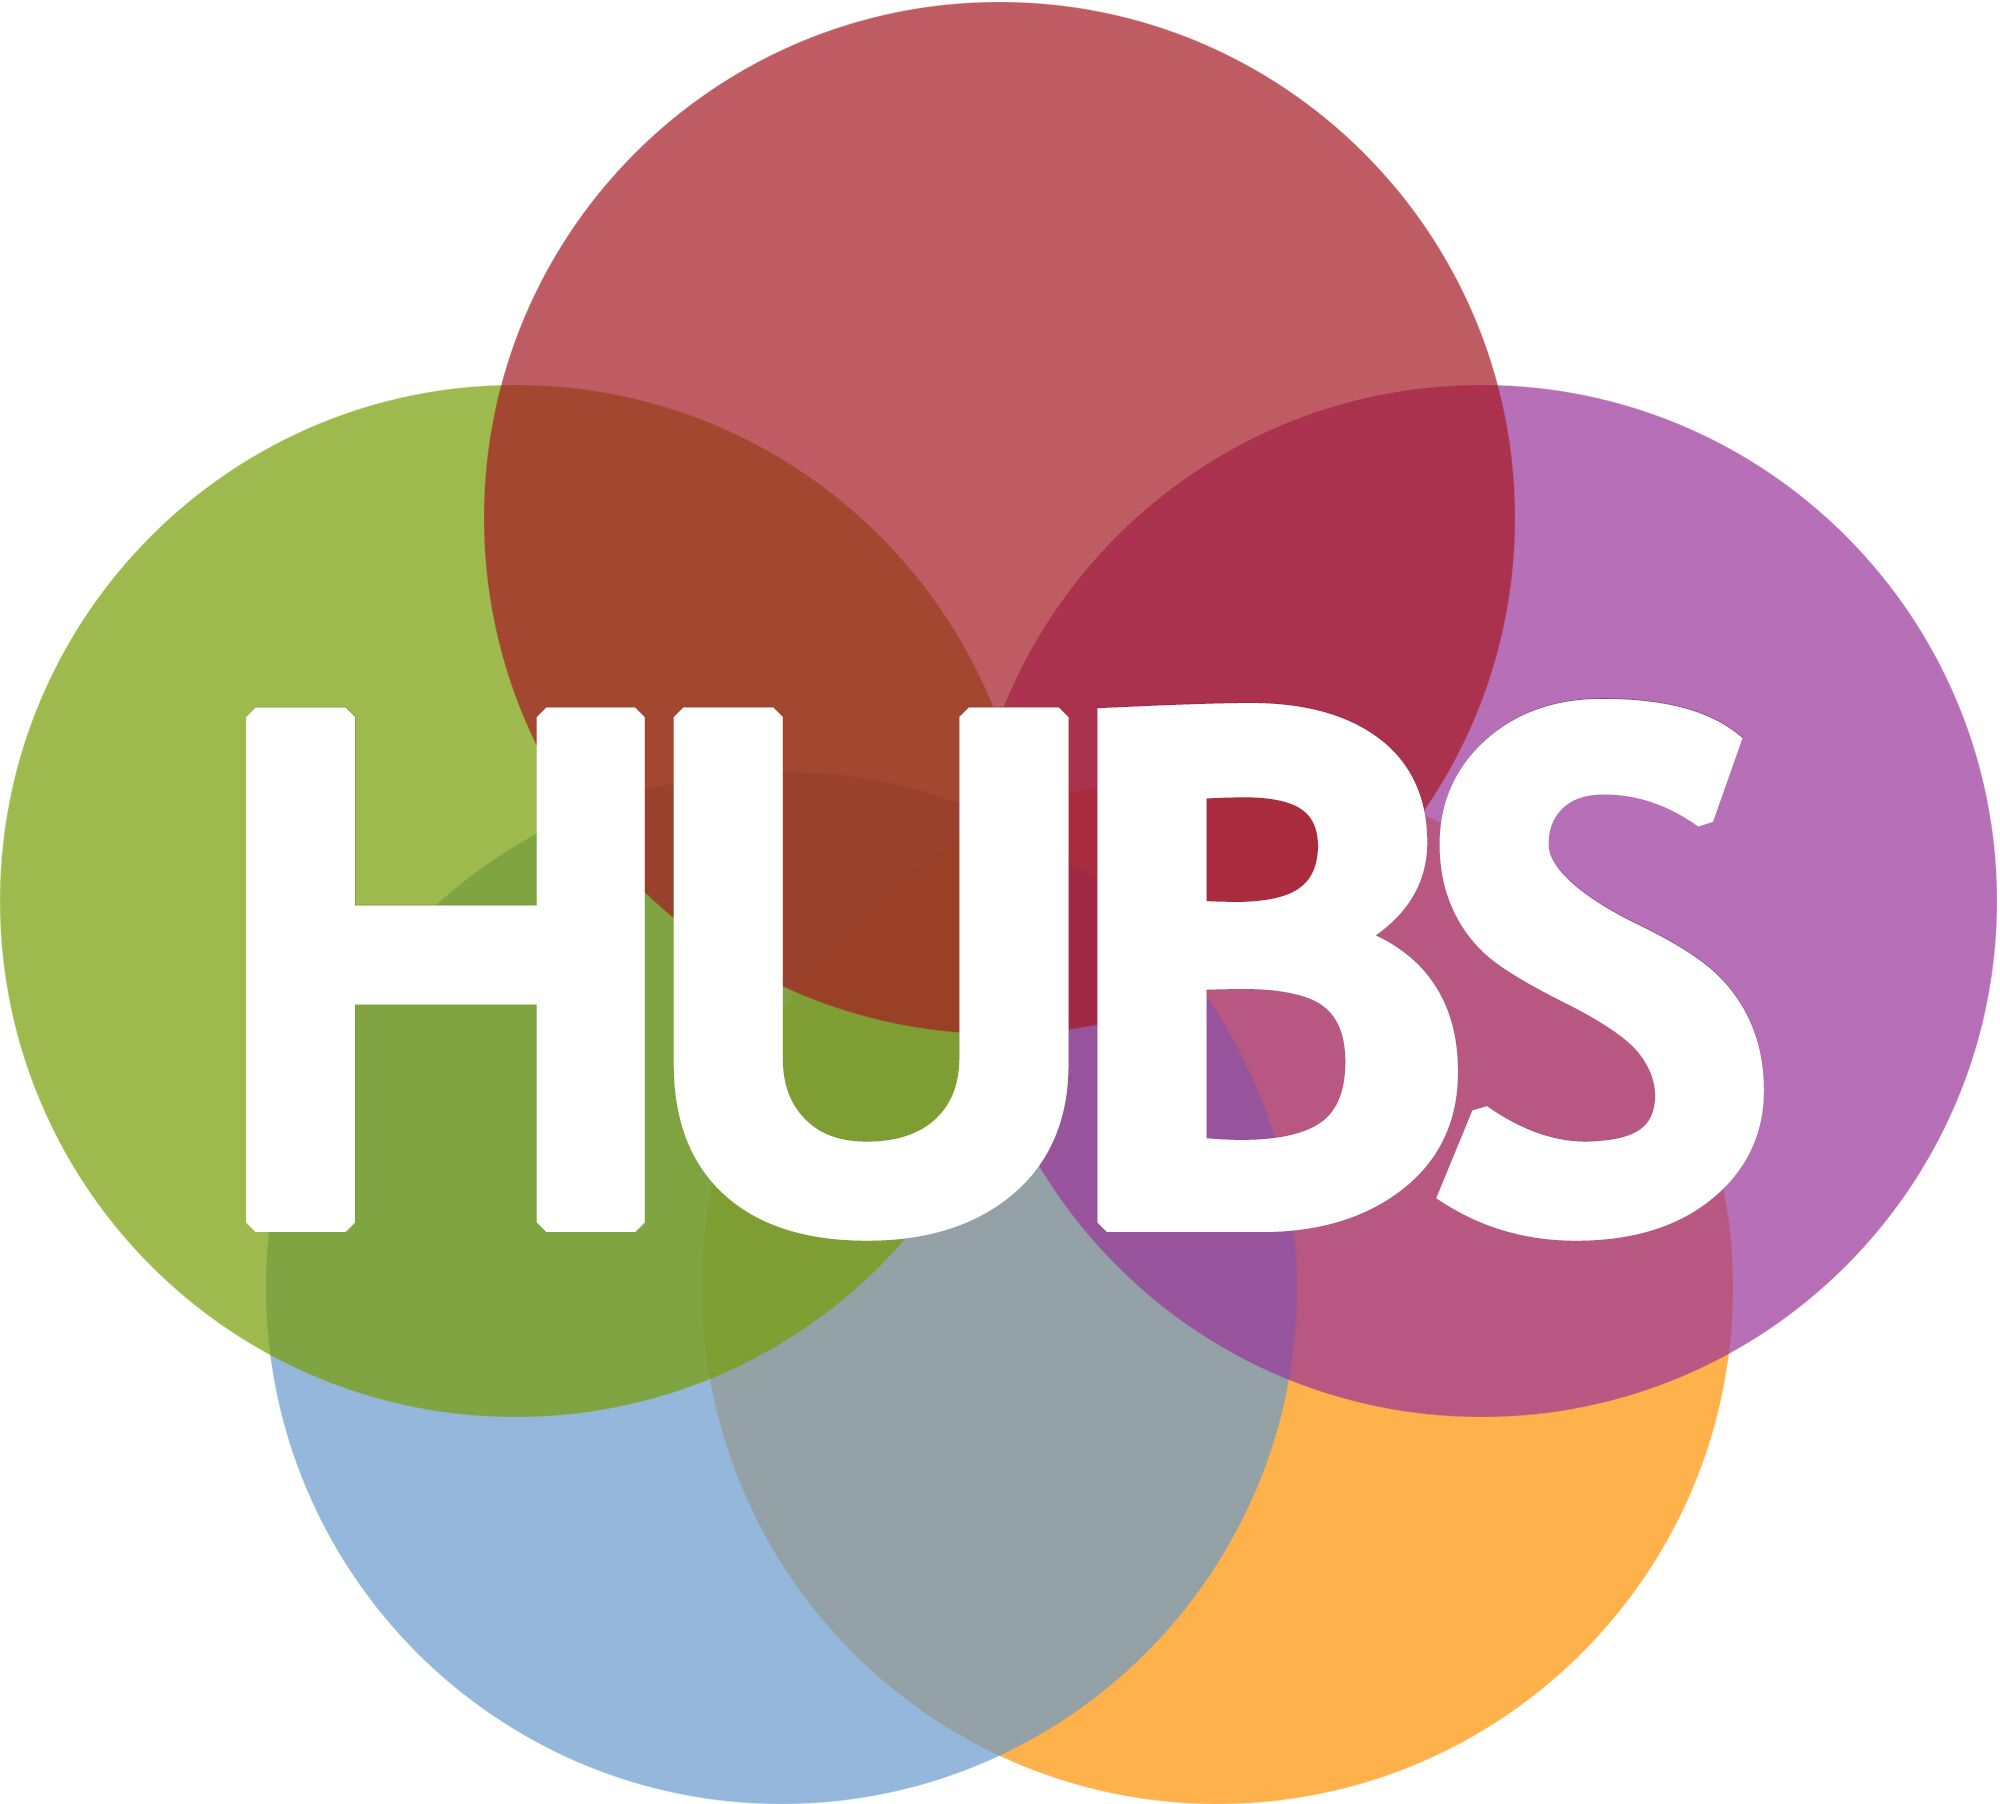 Find out more about hubs that are currently running - View the list of hubs below to find out more.When you've found a Hub you like the look of, select 'Sign up' and fill in the form so we can help you connect.You will then be contacted by a member of the team.